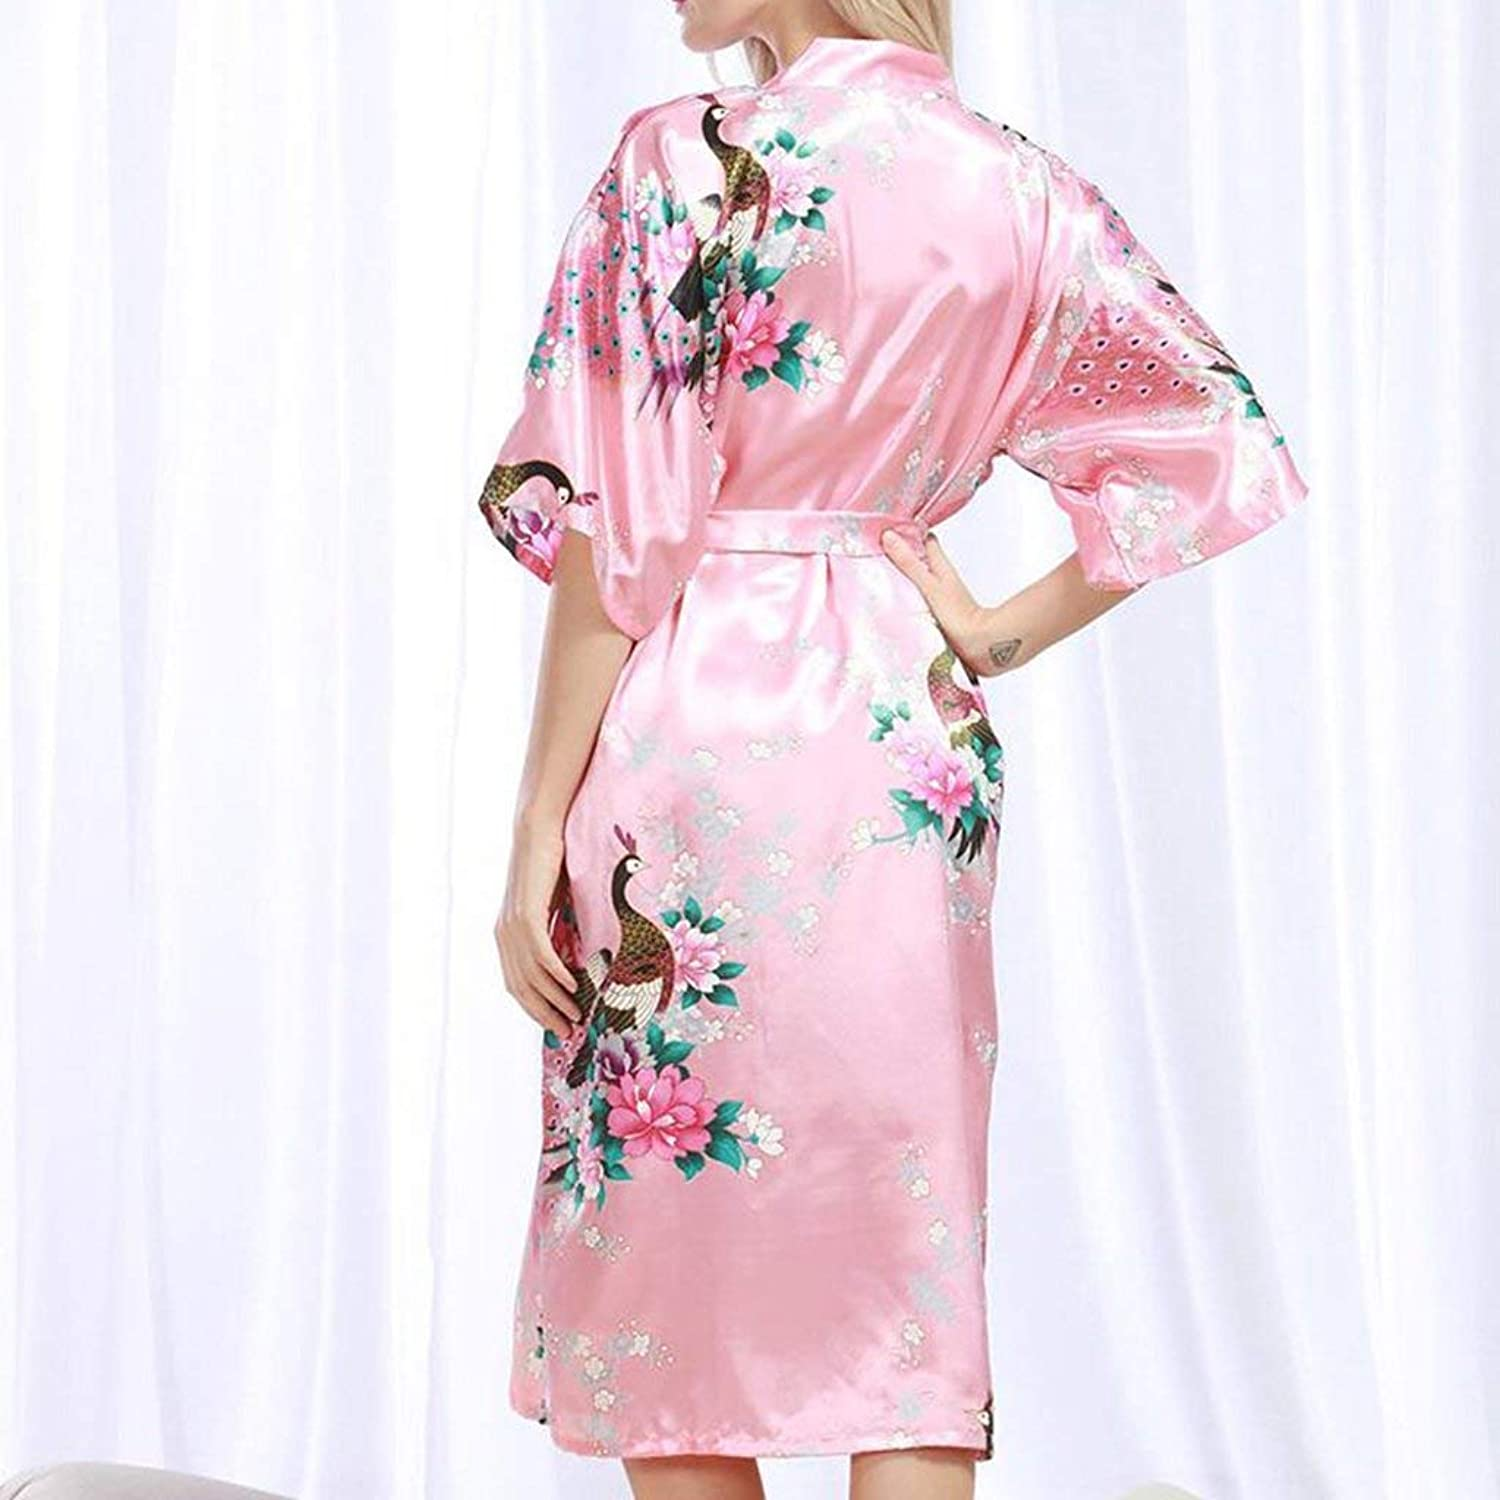 PLLP Comfortable Home Pajamas Shop Cotton with Pockets Bathrobe Pajamas Polyester Summer Female Can Be Worn Outside Short Sleeve Long Section Nightgown Bathrobes Bathrobe Loose Printing Nightdr